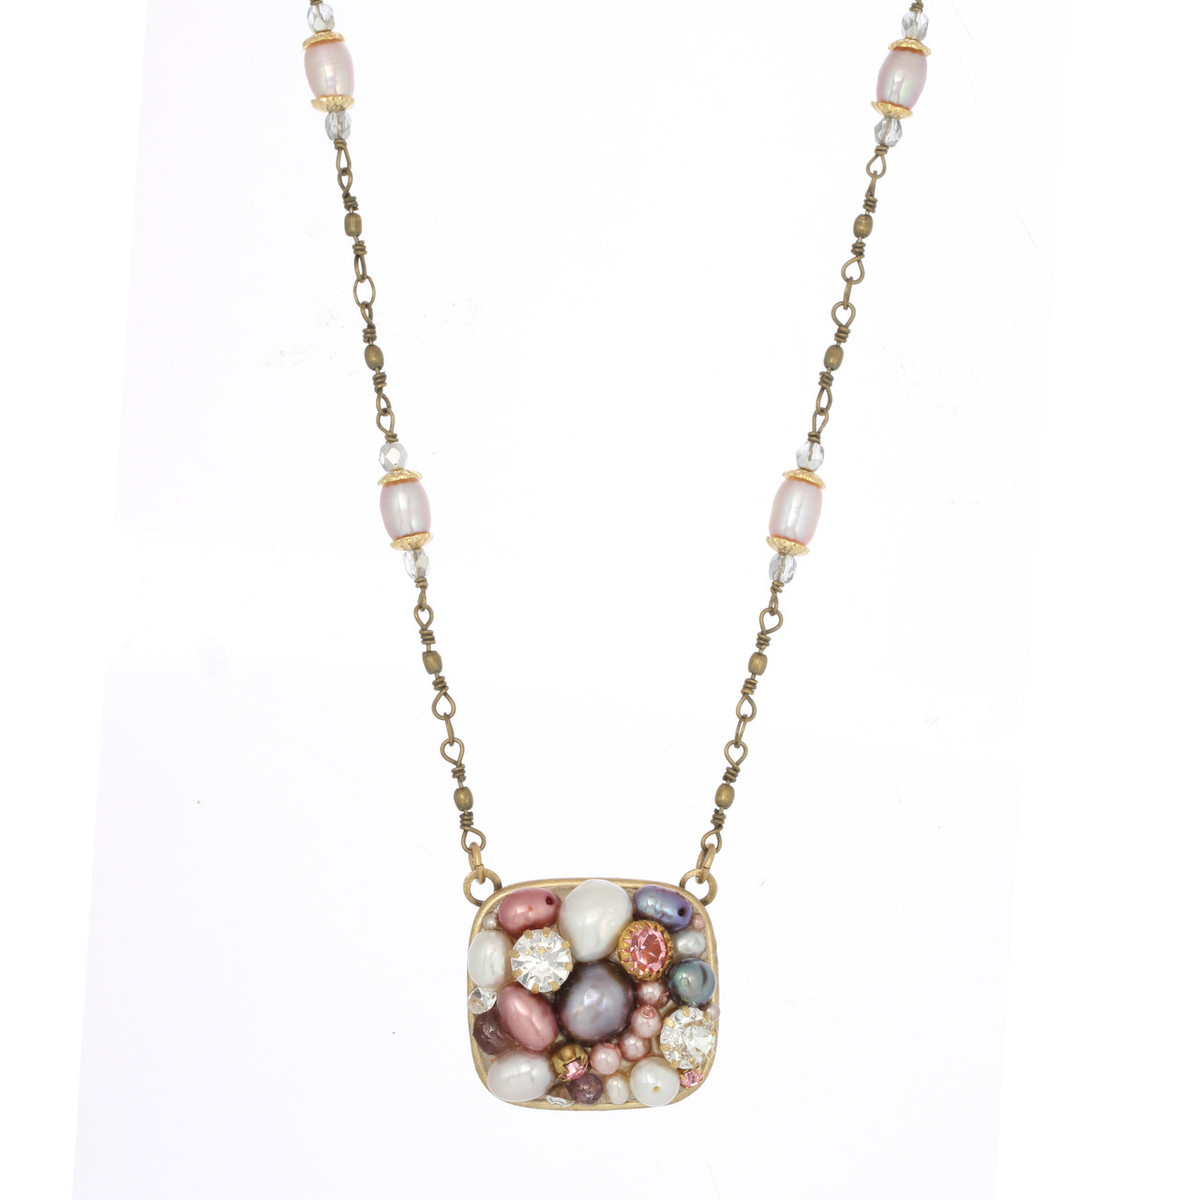 Medium Square necklace from Michal Golan Jewelry